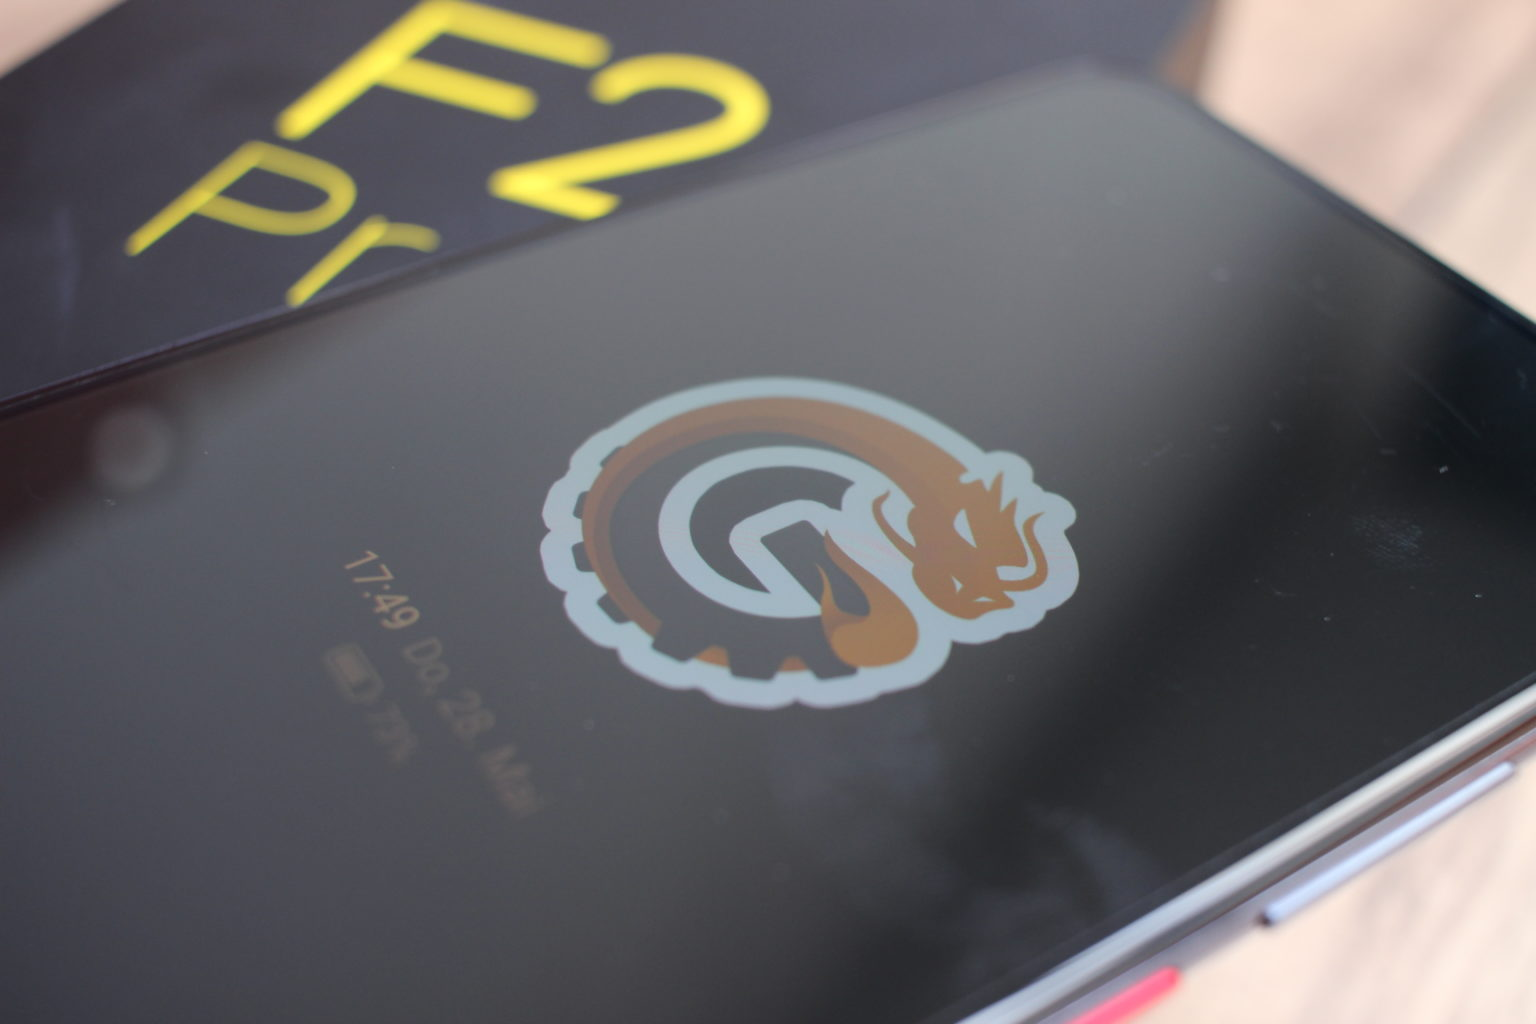 Modo Always On en el Pocophone F2 Pro con el logo de China-Gadgets